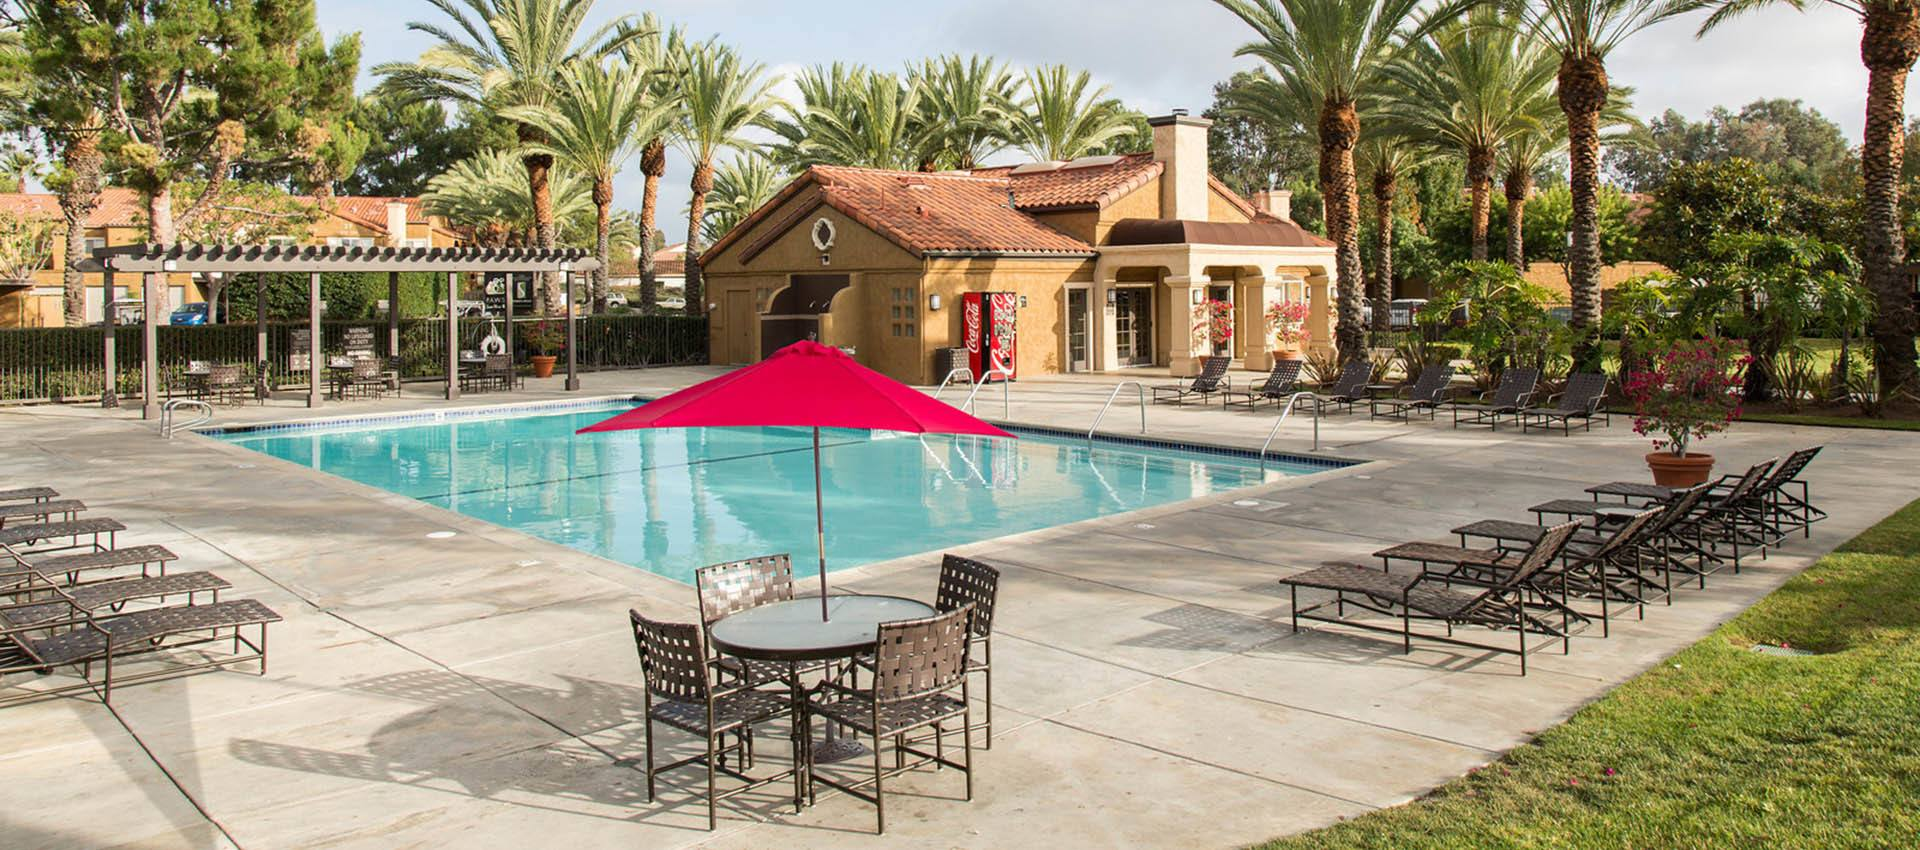 Resort Style Swimming Pool at Hidden Hills Condominium Rentals in Laguna Niguel, CA